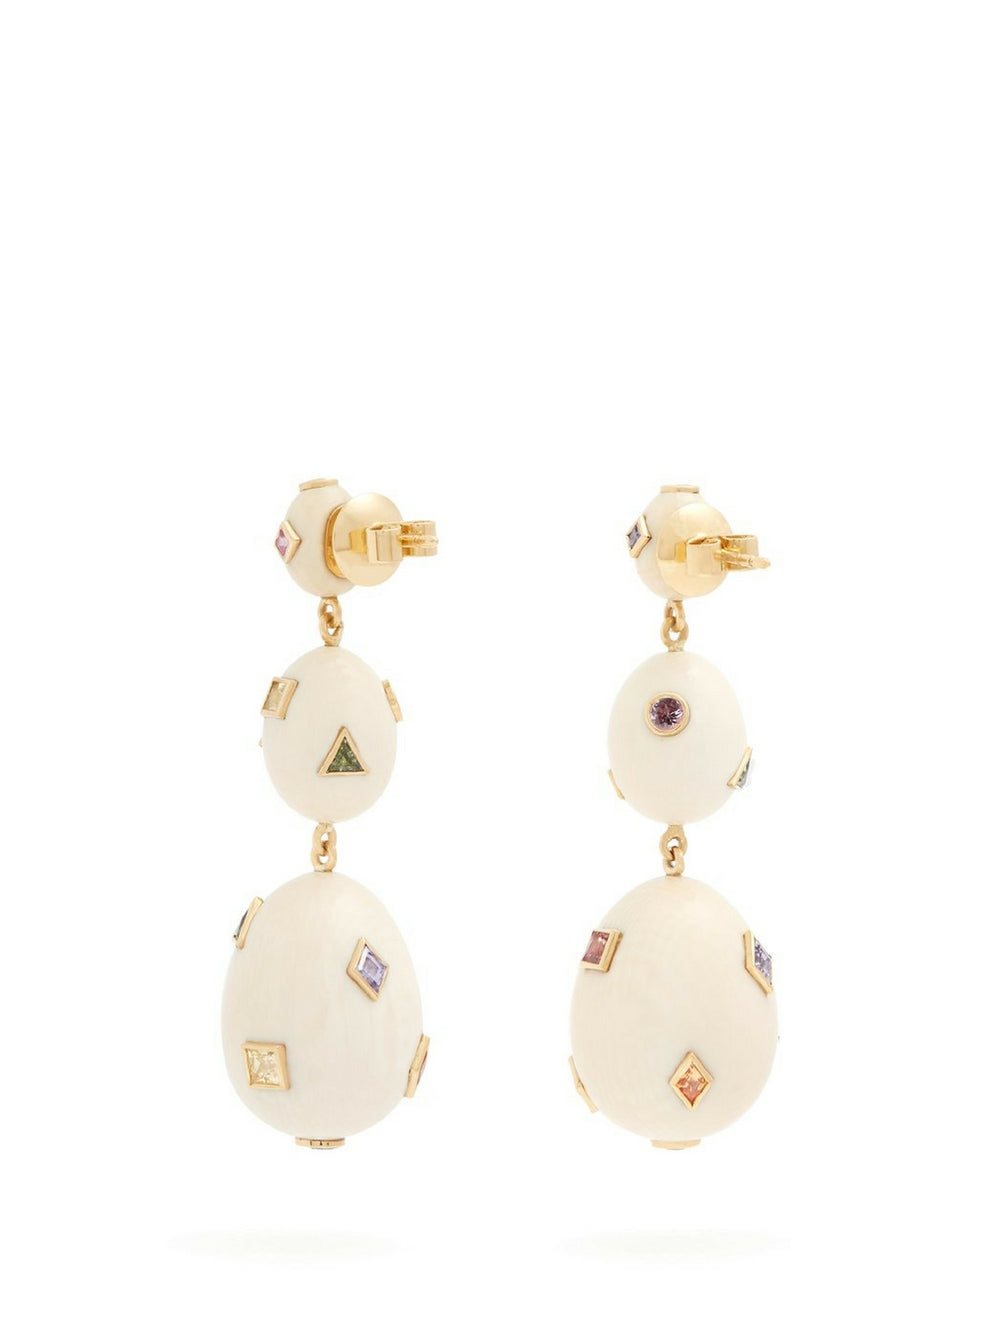 bibi-van-der-velden-pop-art-earrings